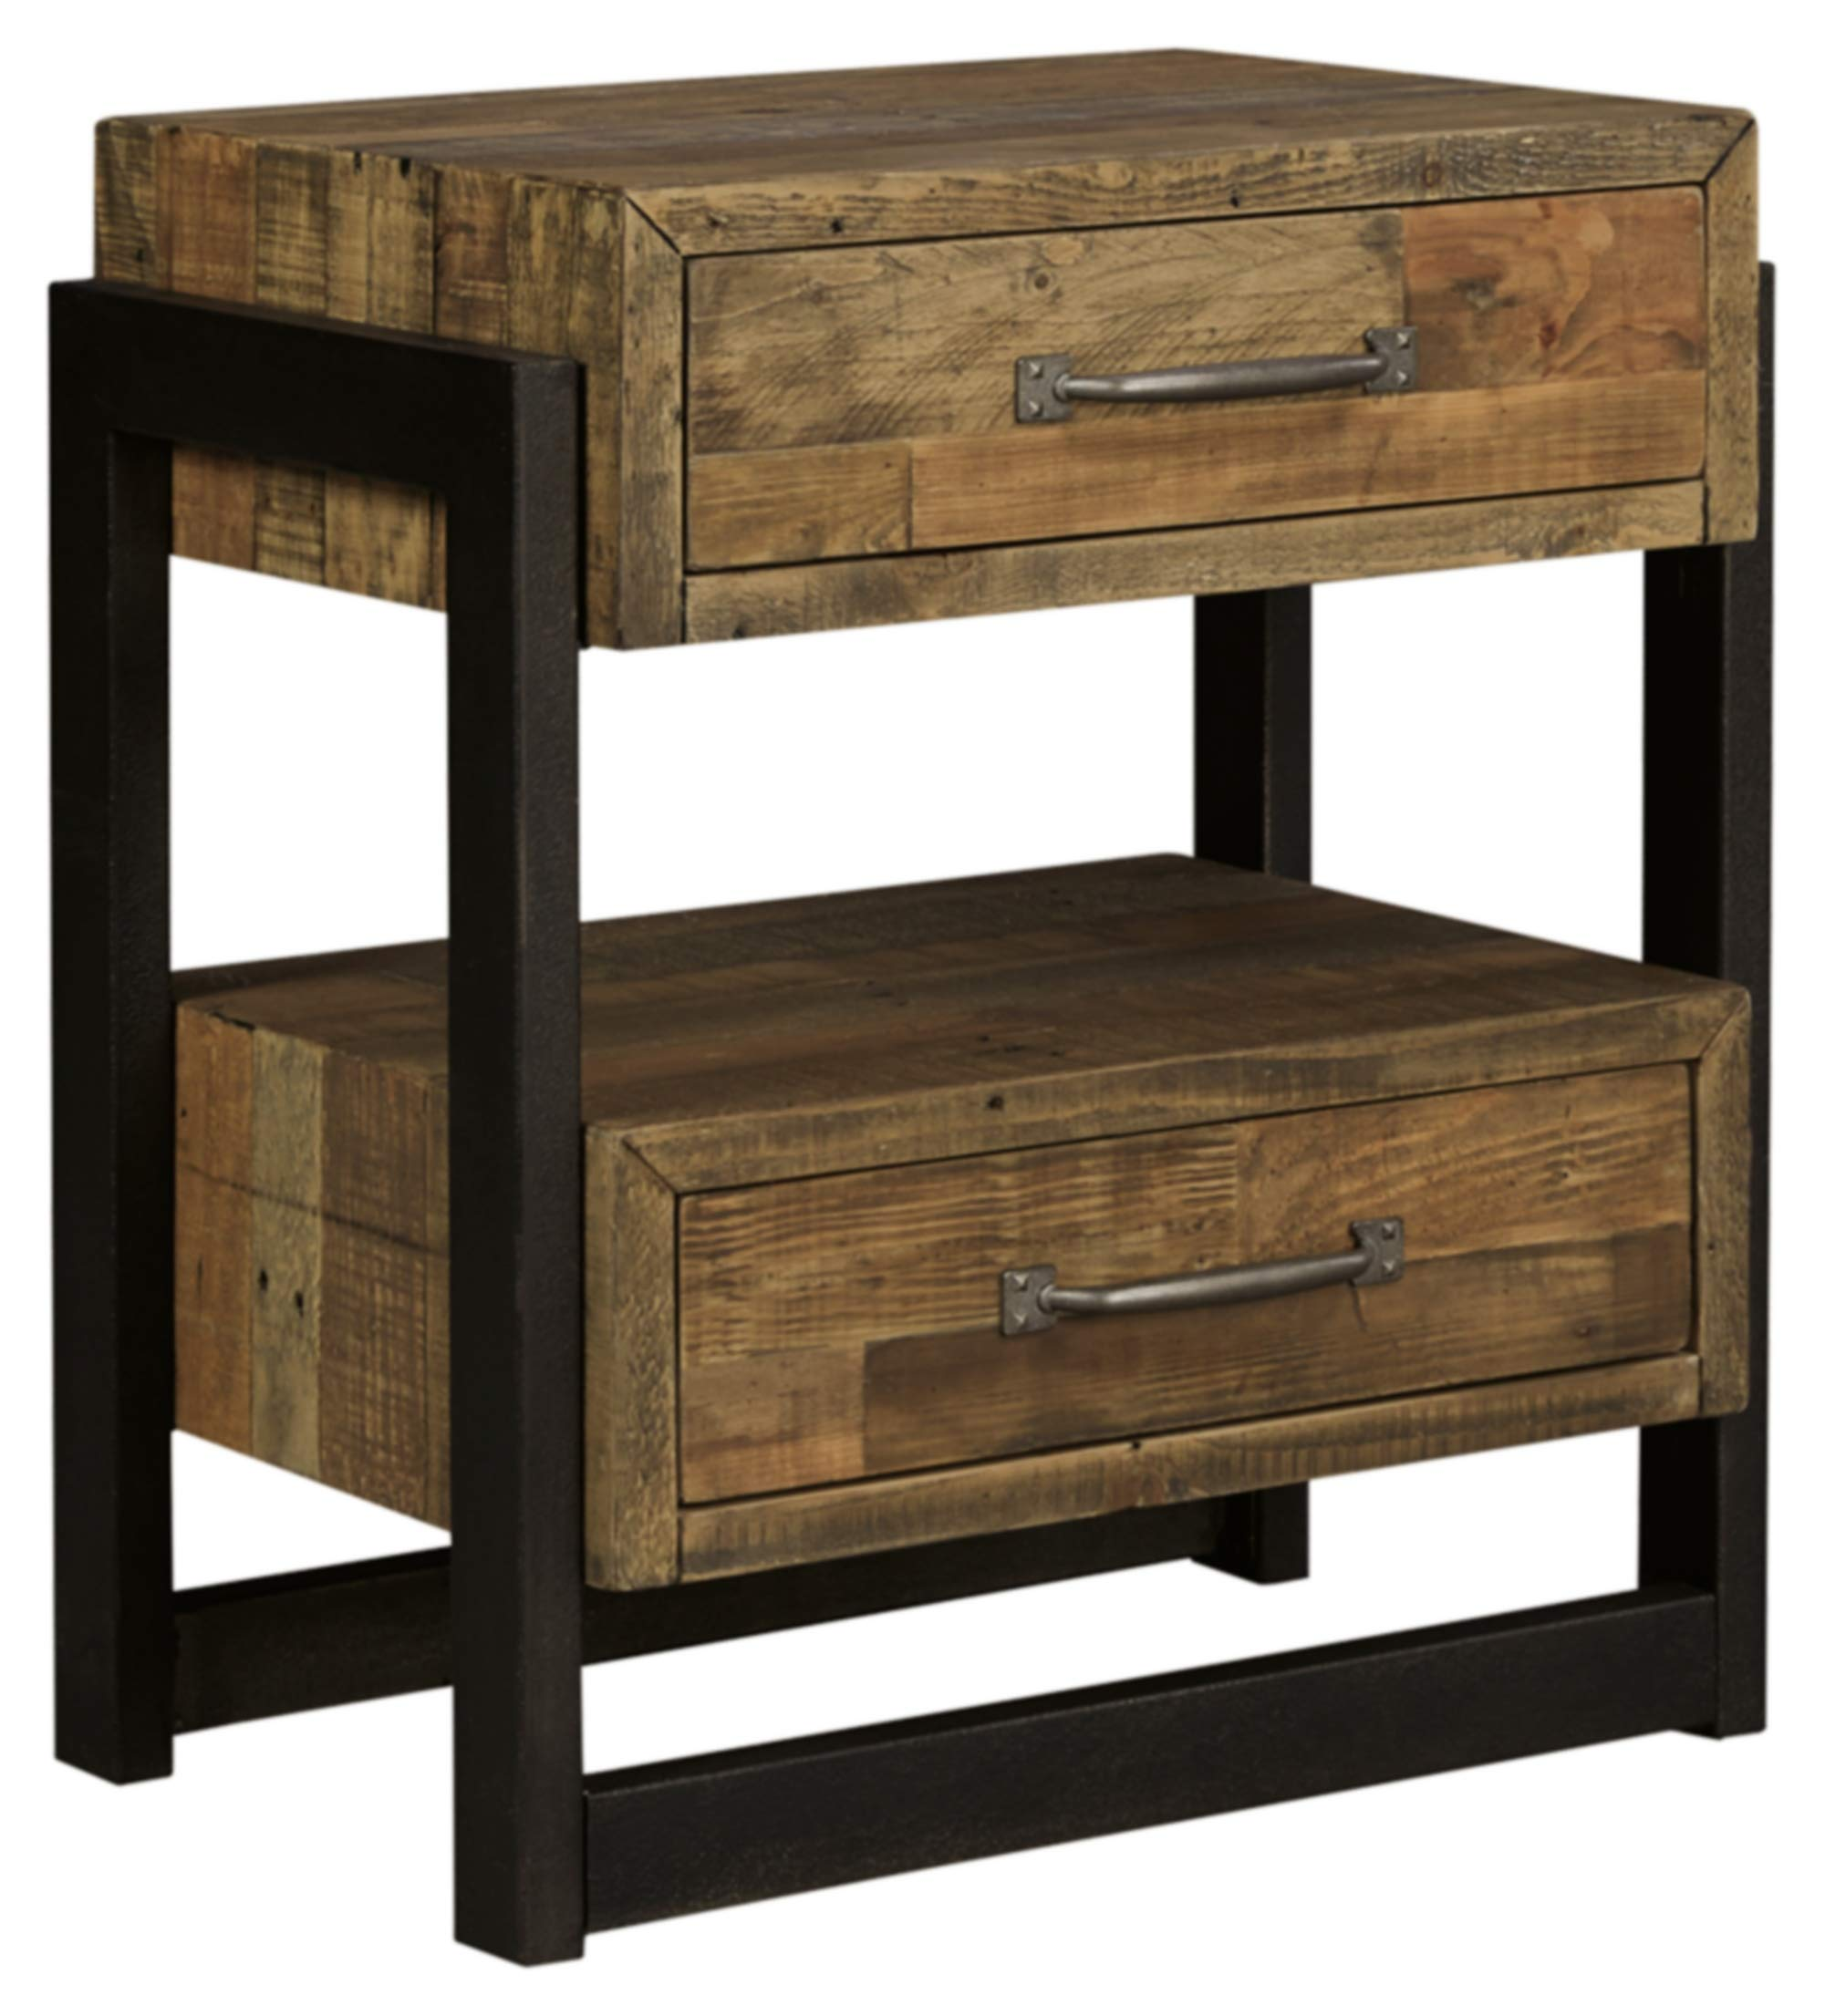 Ashley Furniture Signature Design - Sommerford Nightstand - Brown